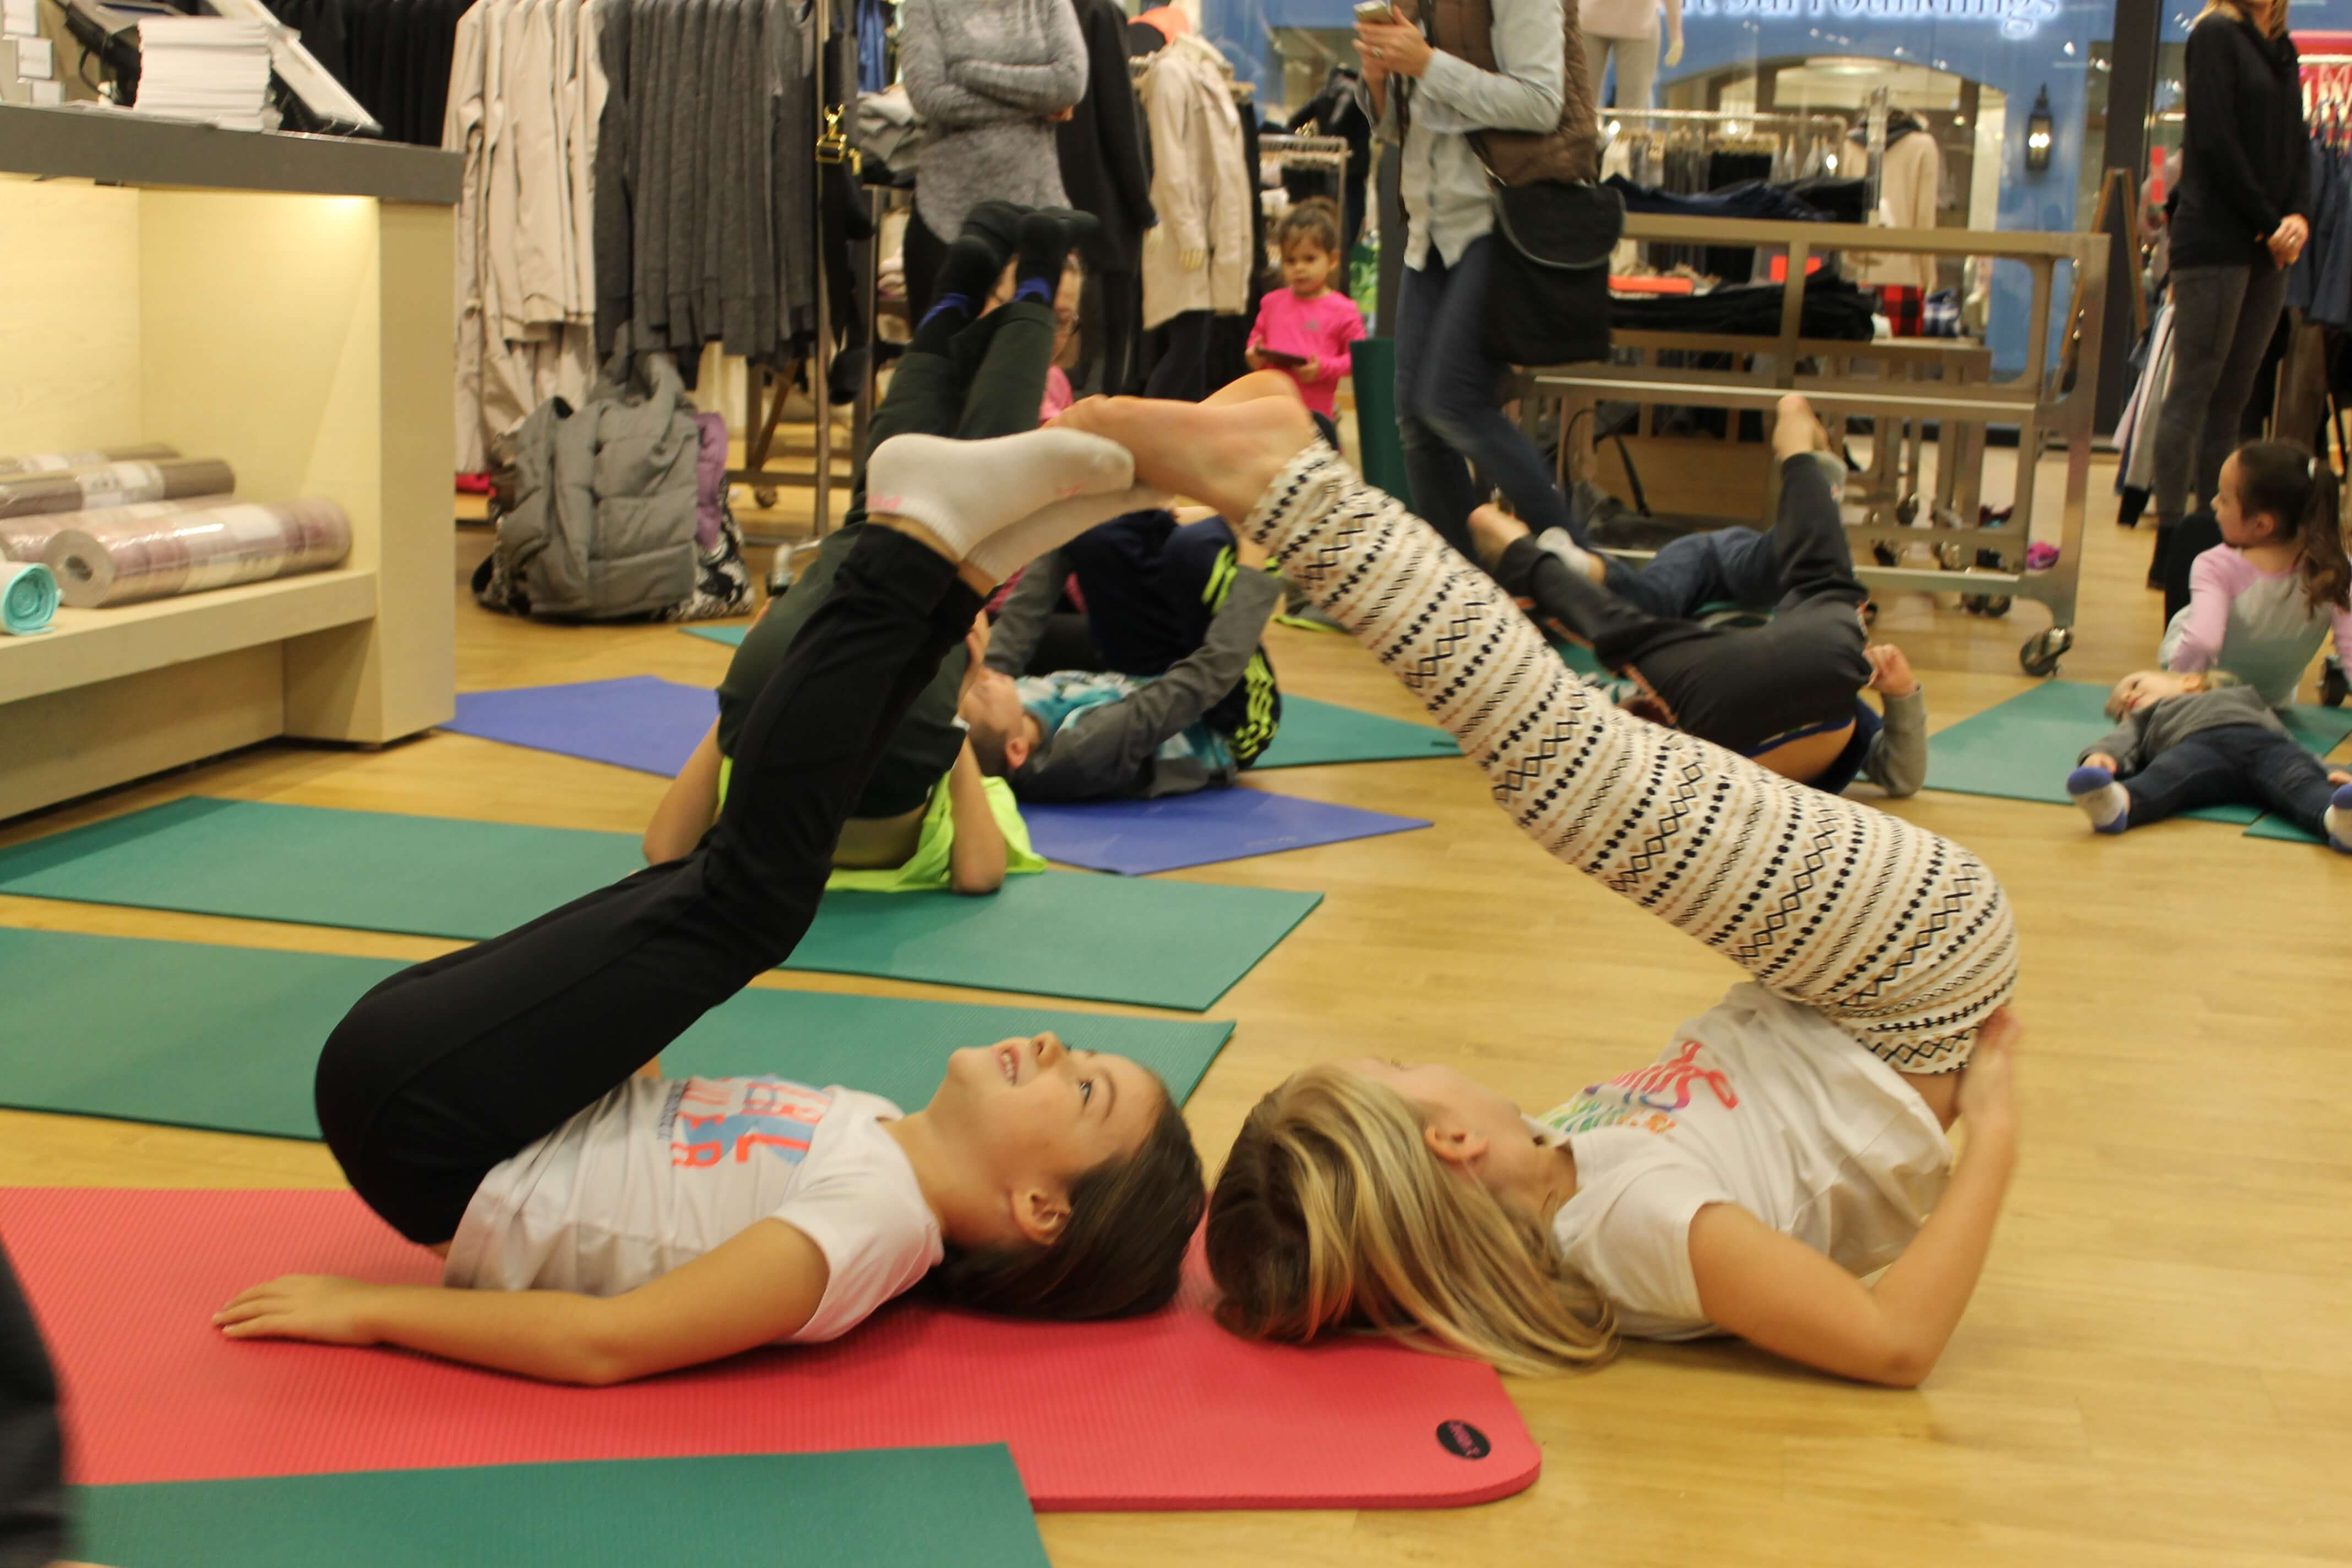 Want To See A Video Of This Go Yoga Kids Class In Action Check Out It Here